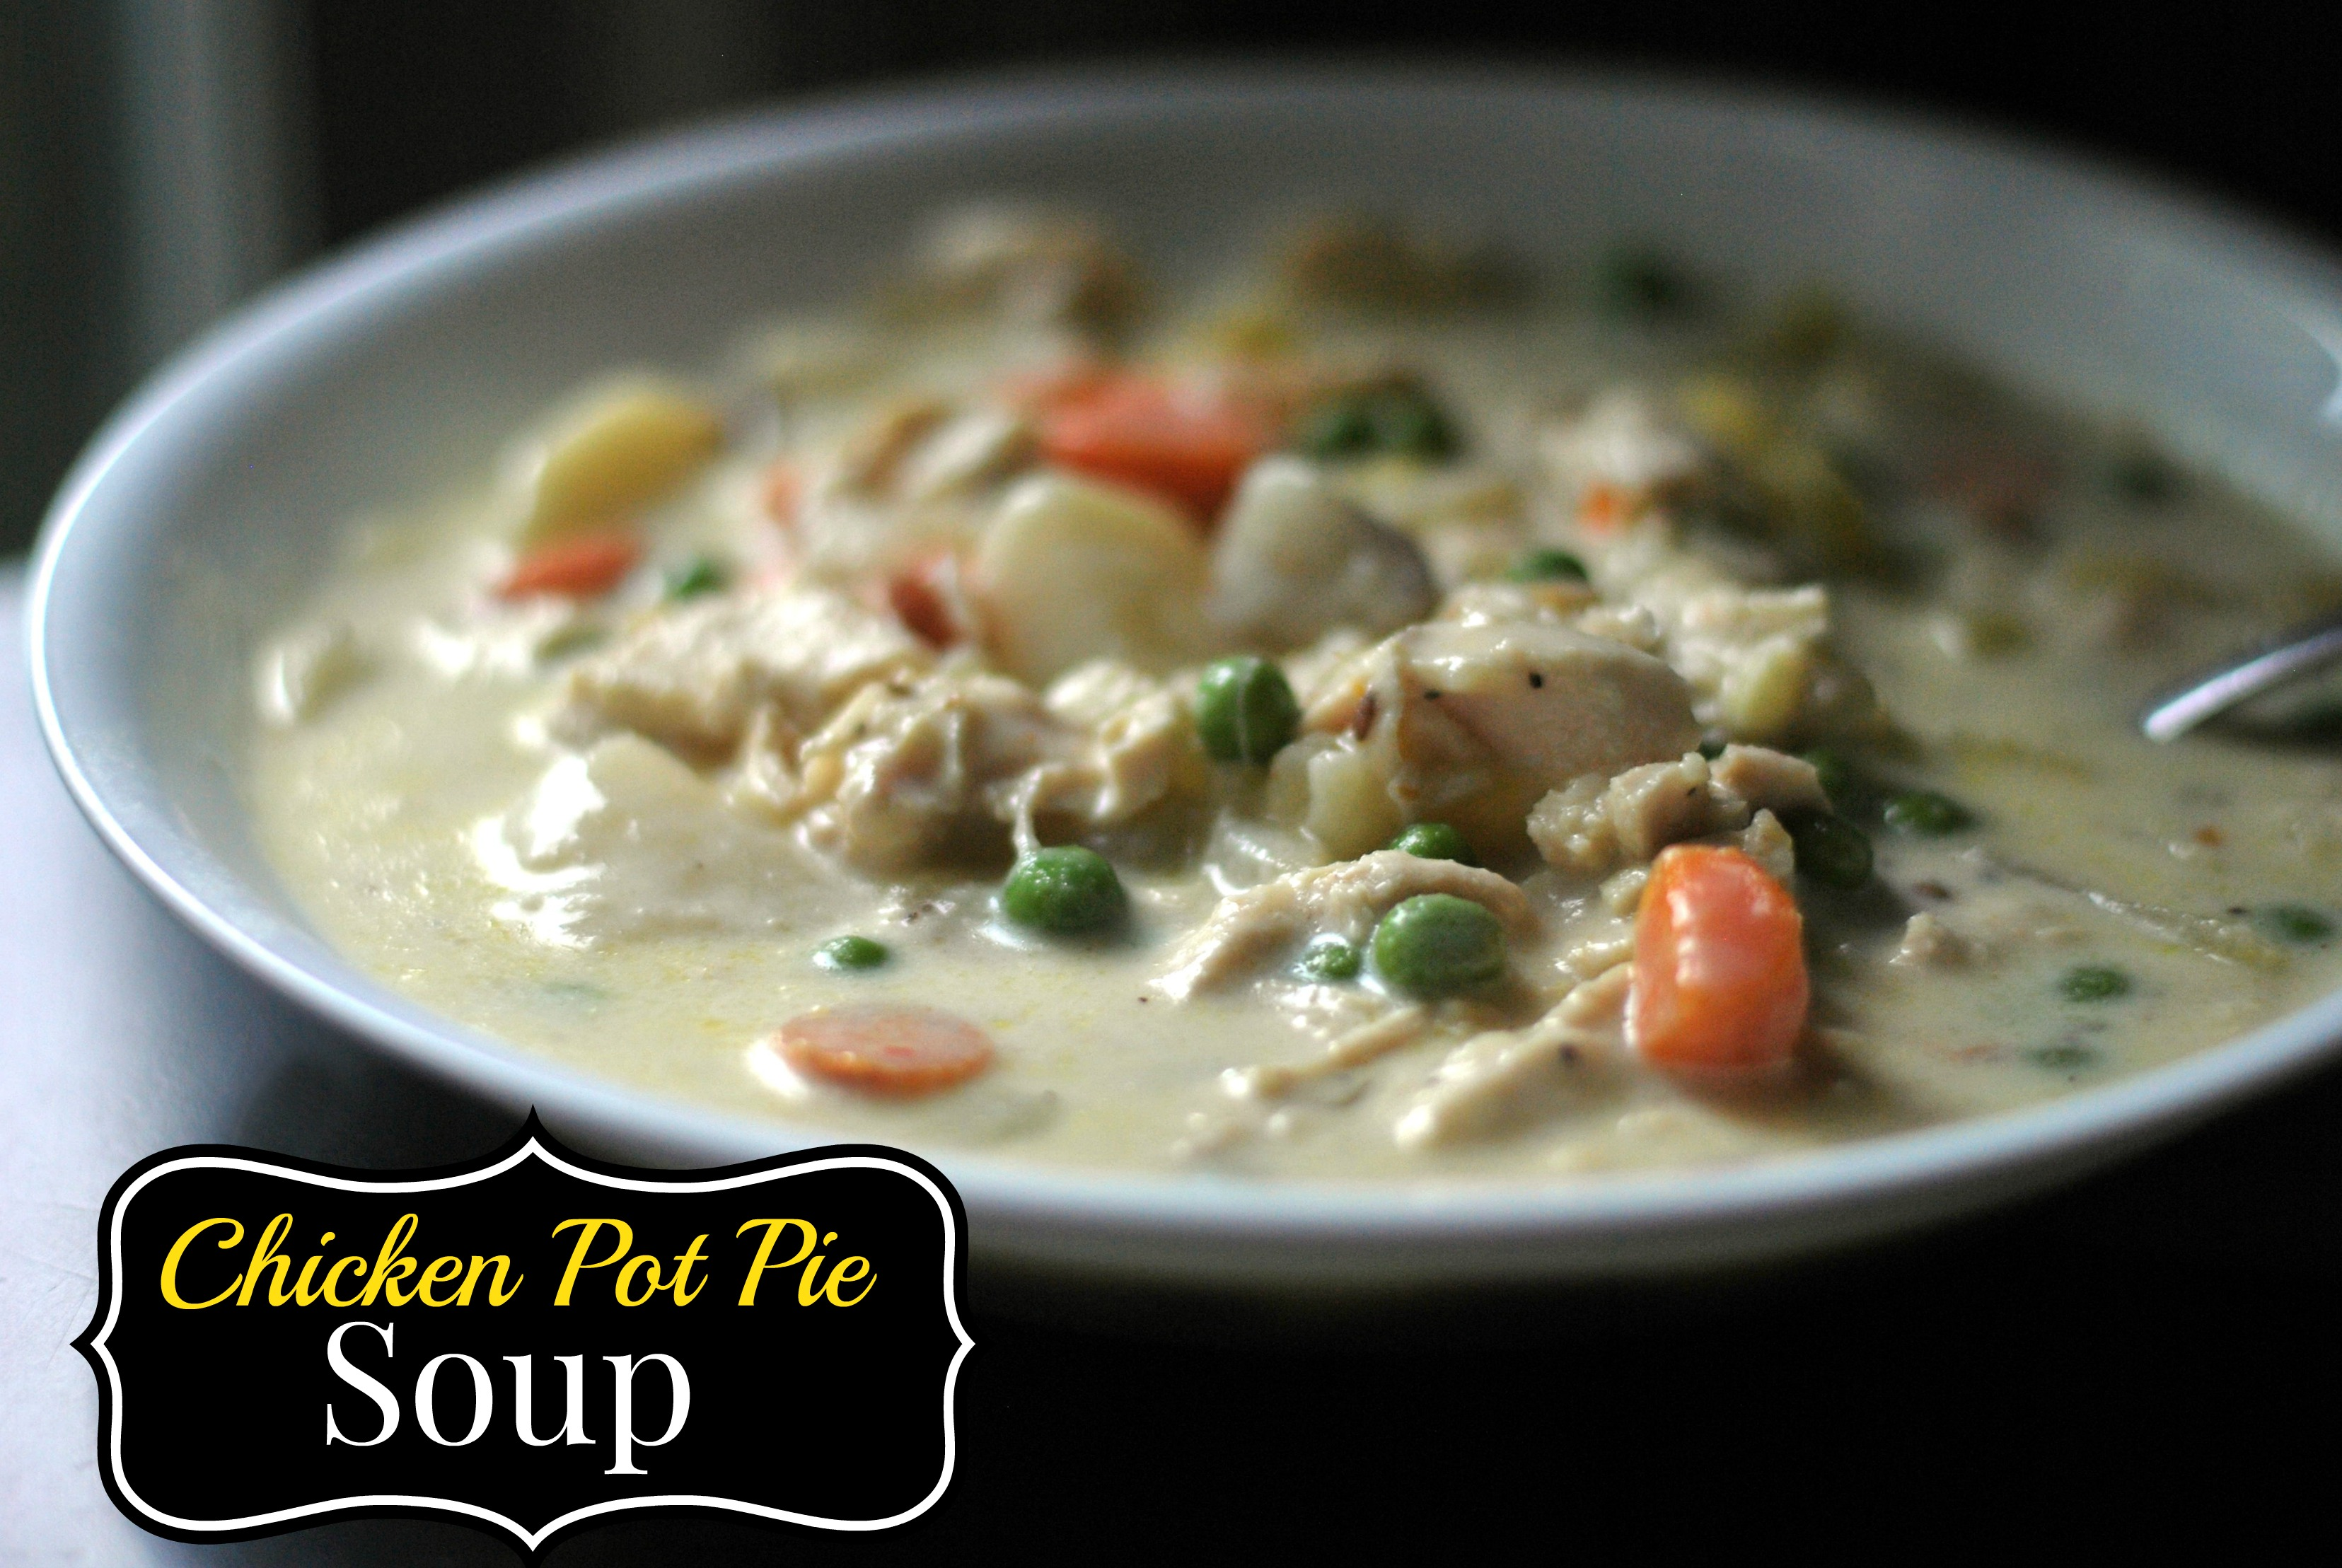 Chicken Pot Pie Soup - Aunt Bee's Recipes